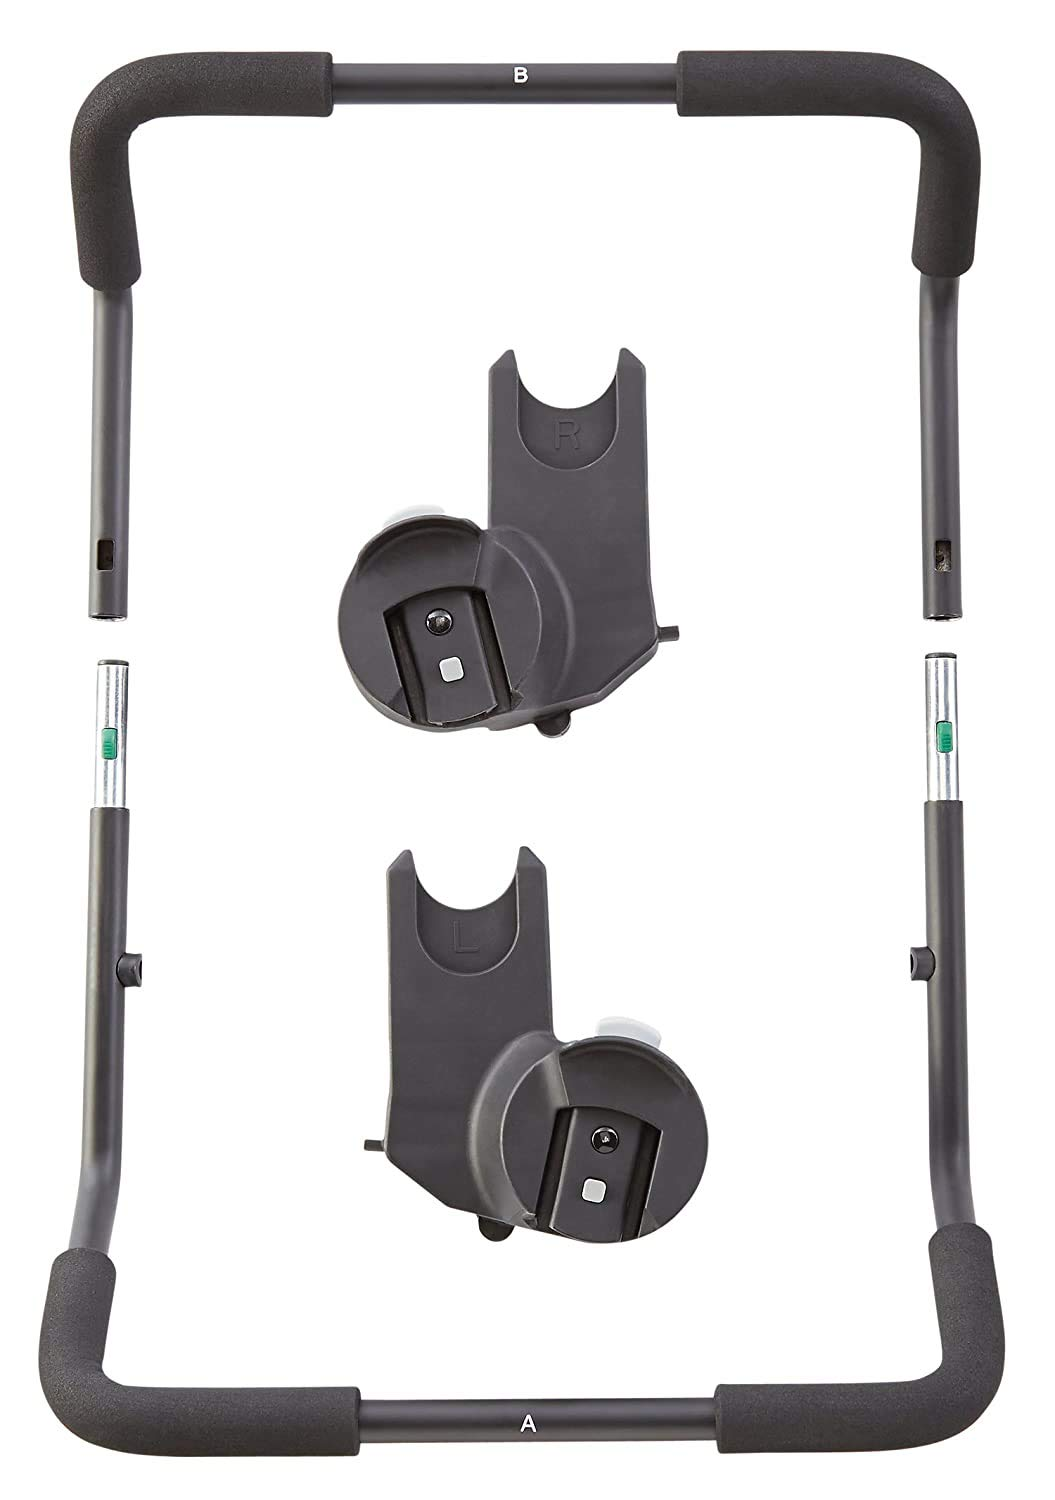 Baby Jogger Chicco/Peg Perego Car Seat Adapter for City Select and City Select LUX Strollers, Black